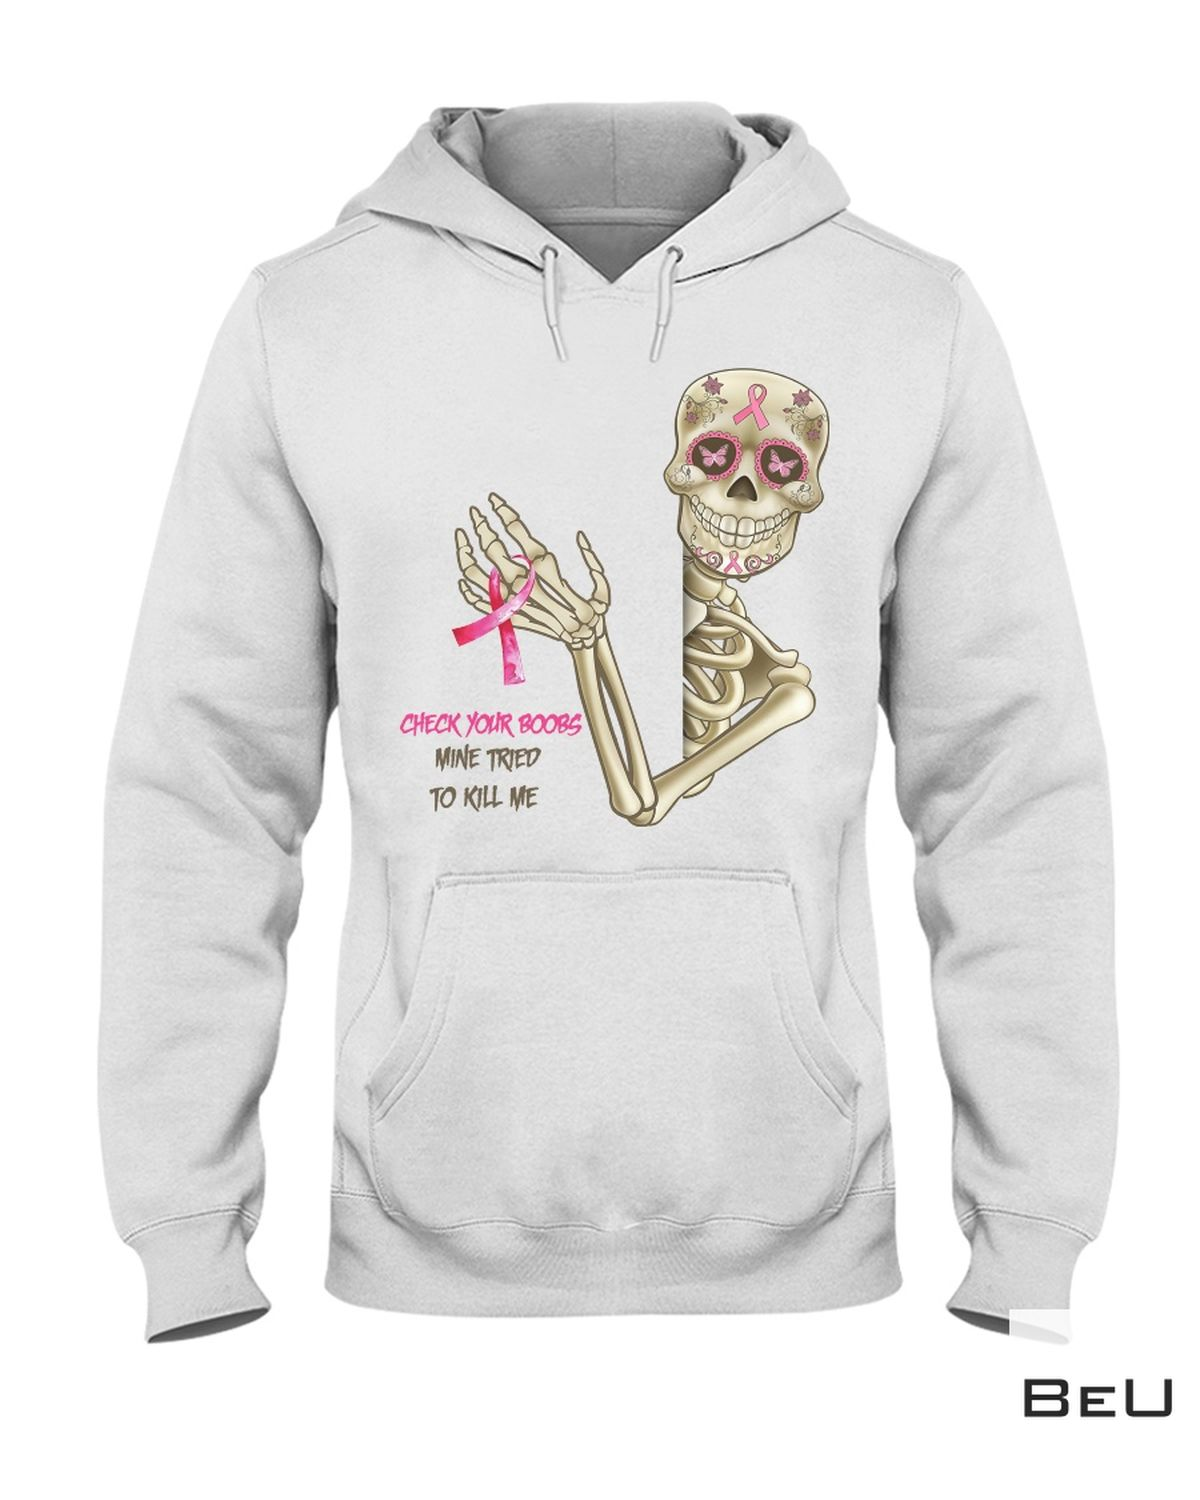 Drop Shipping Breast Cancer Awareness Skeleton Check Your Boobs Mine Tried To Kill Me Shirt, hoodie, tank top